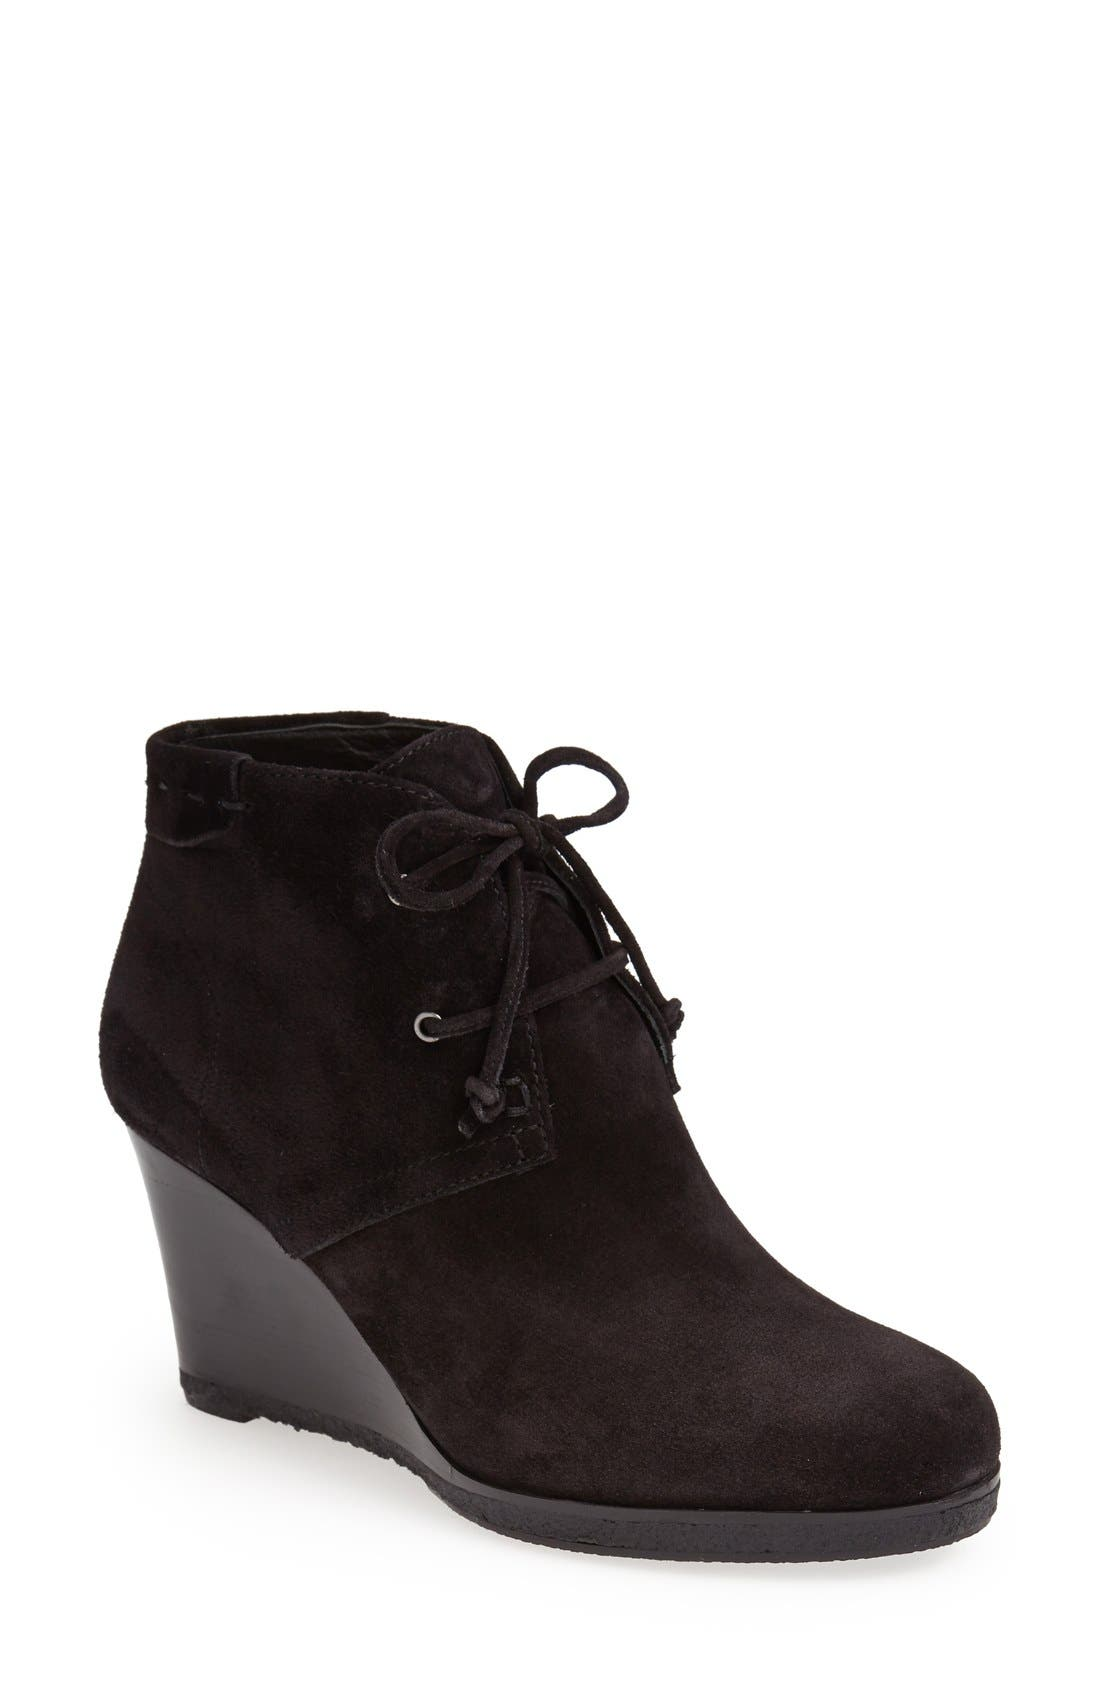 'Mirren' Wedge Bootie, Main, color, 002